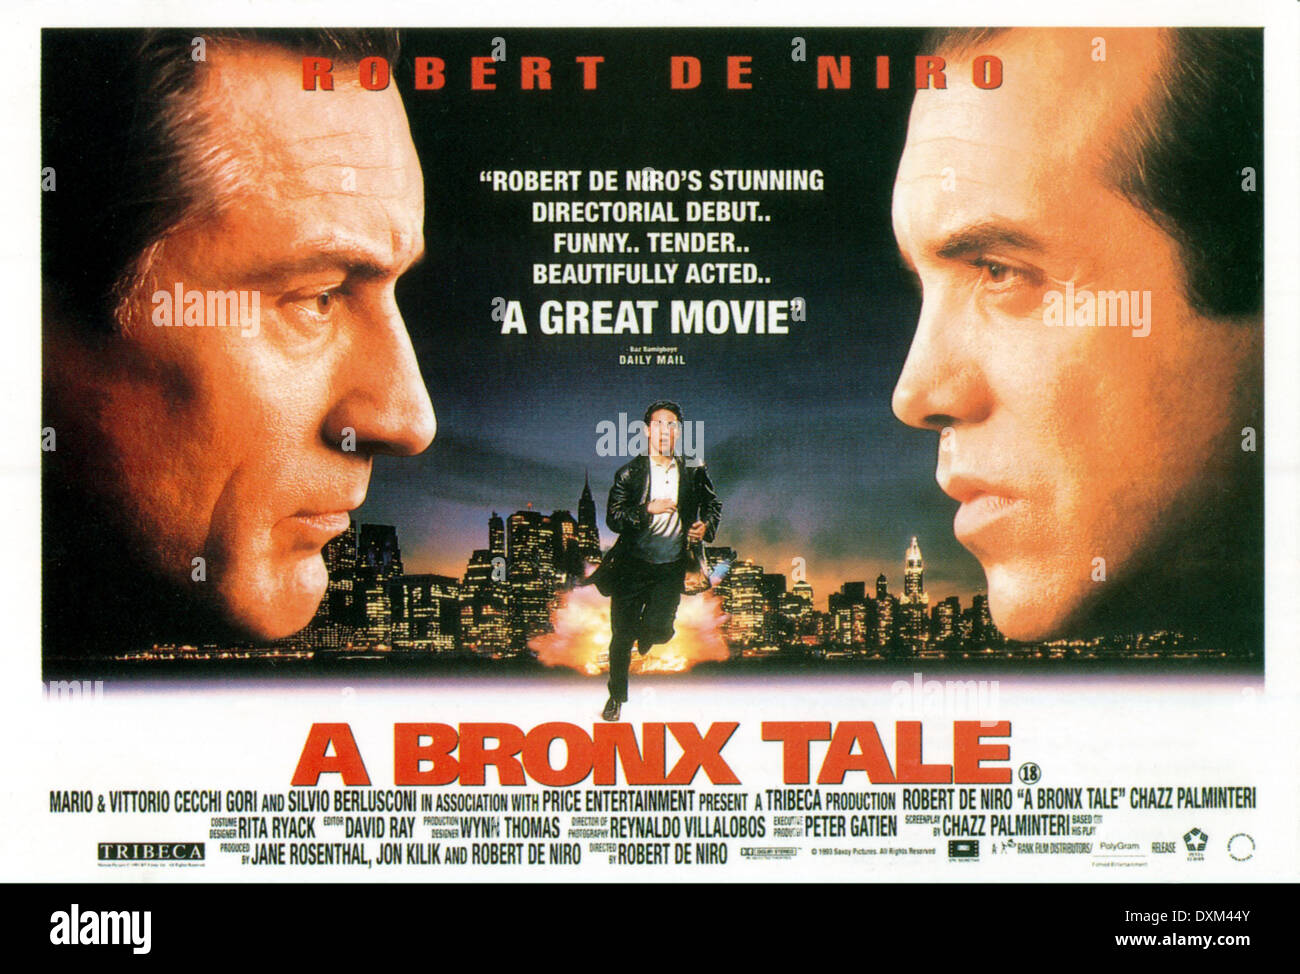 movie review a bronx tale Movie review: a bronx tale the choices you make will shape your life forever, a quote that haunts several characters throughout the movie a bronx tale calogero (also known as cee), played by francis capra (age 9) and by lillo brancato(age 17) , narrates his story about growing up in the bronx, new york in the 1960's.